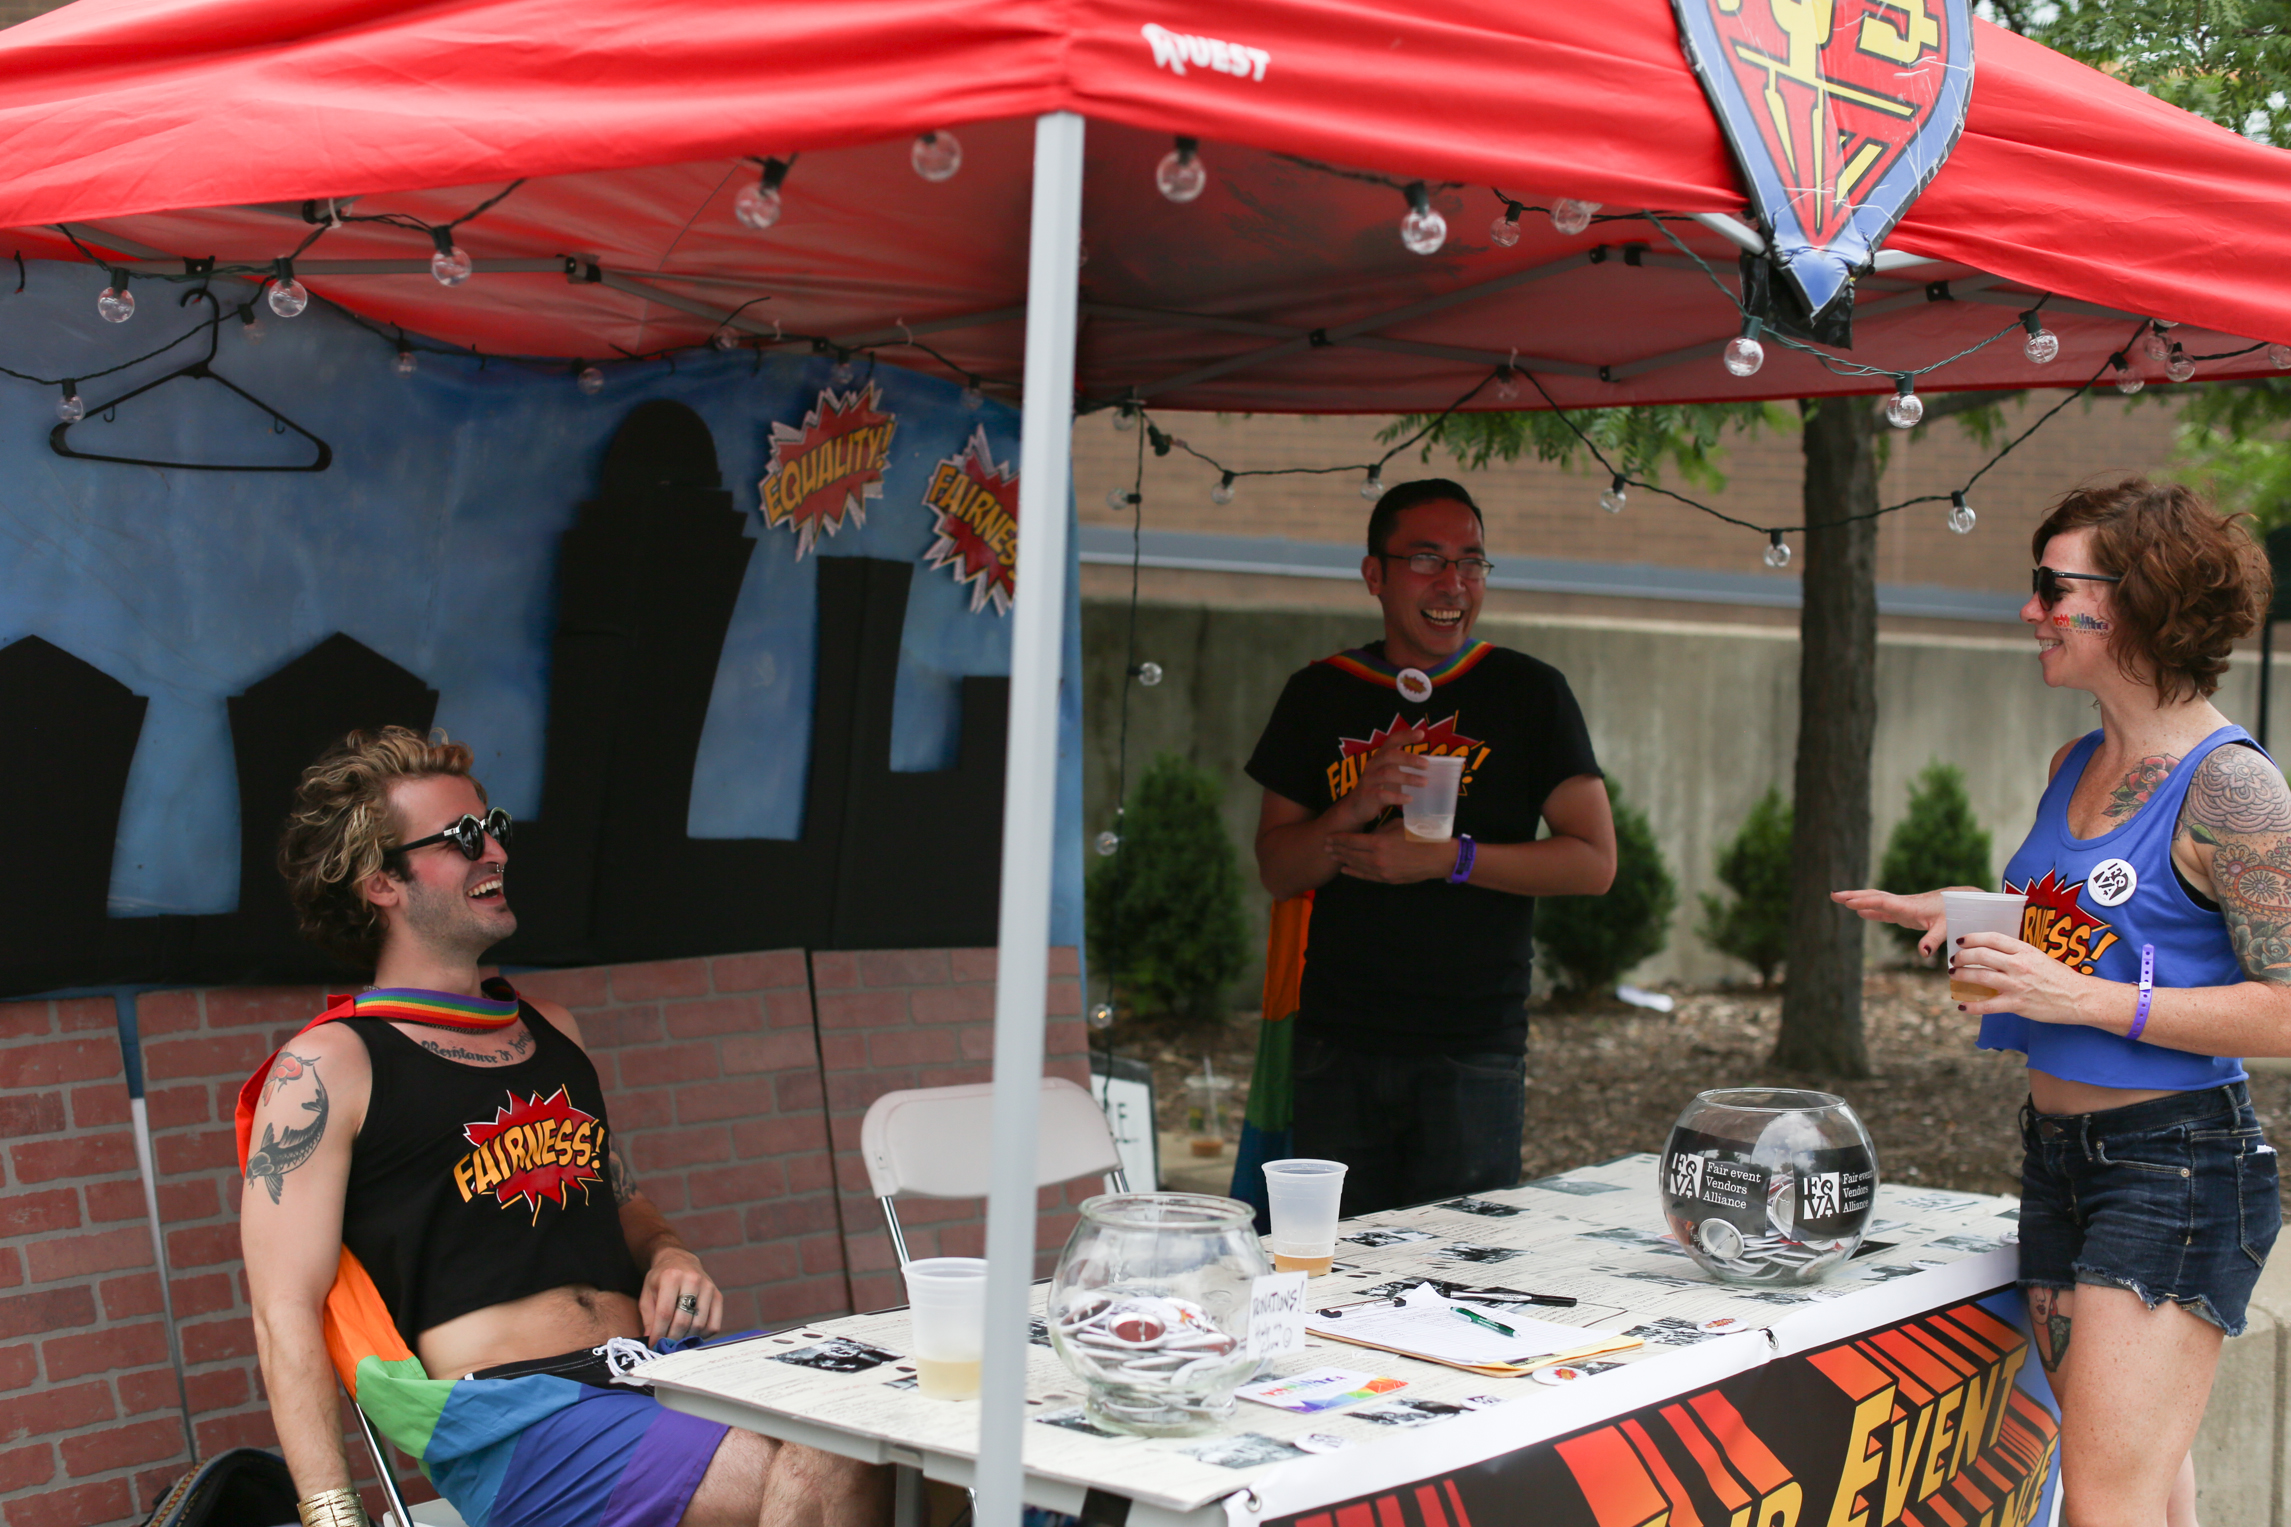 PRIDE W-FEVA 2015 EDITED CRYSTAL LUDWICK PHOTO (48 of 83).jpg